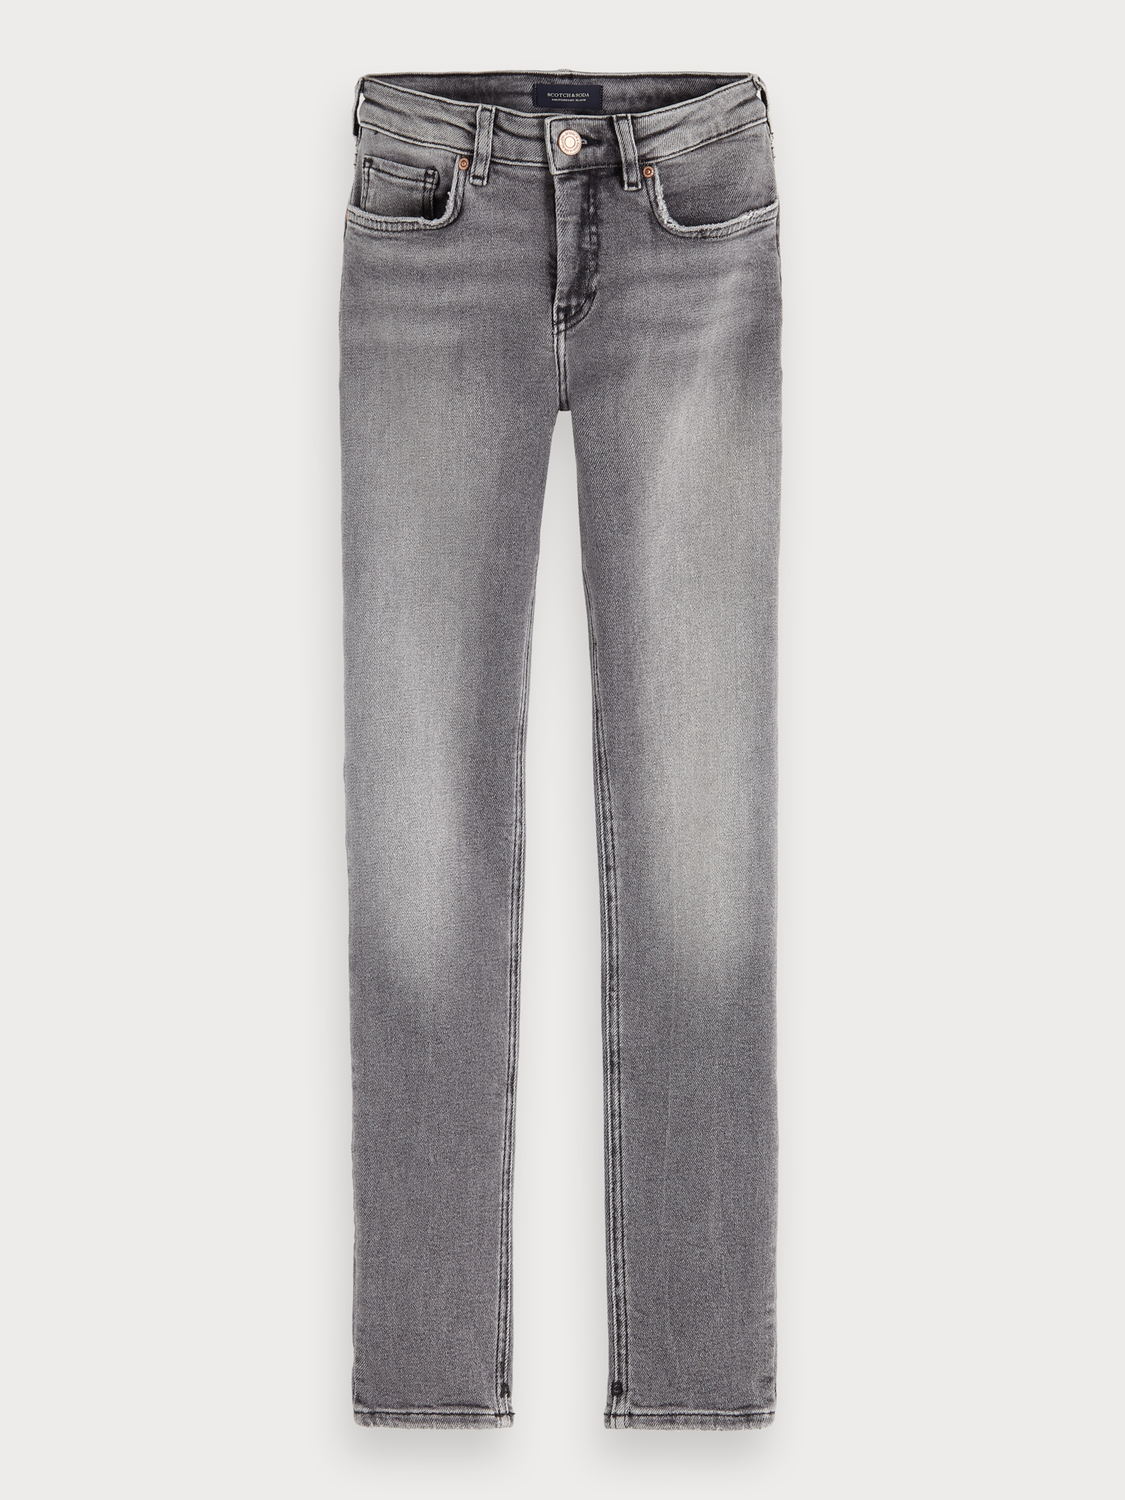 Mujer La Bohemienne - The Great Grey | Mid rise skinny fit